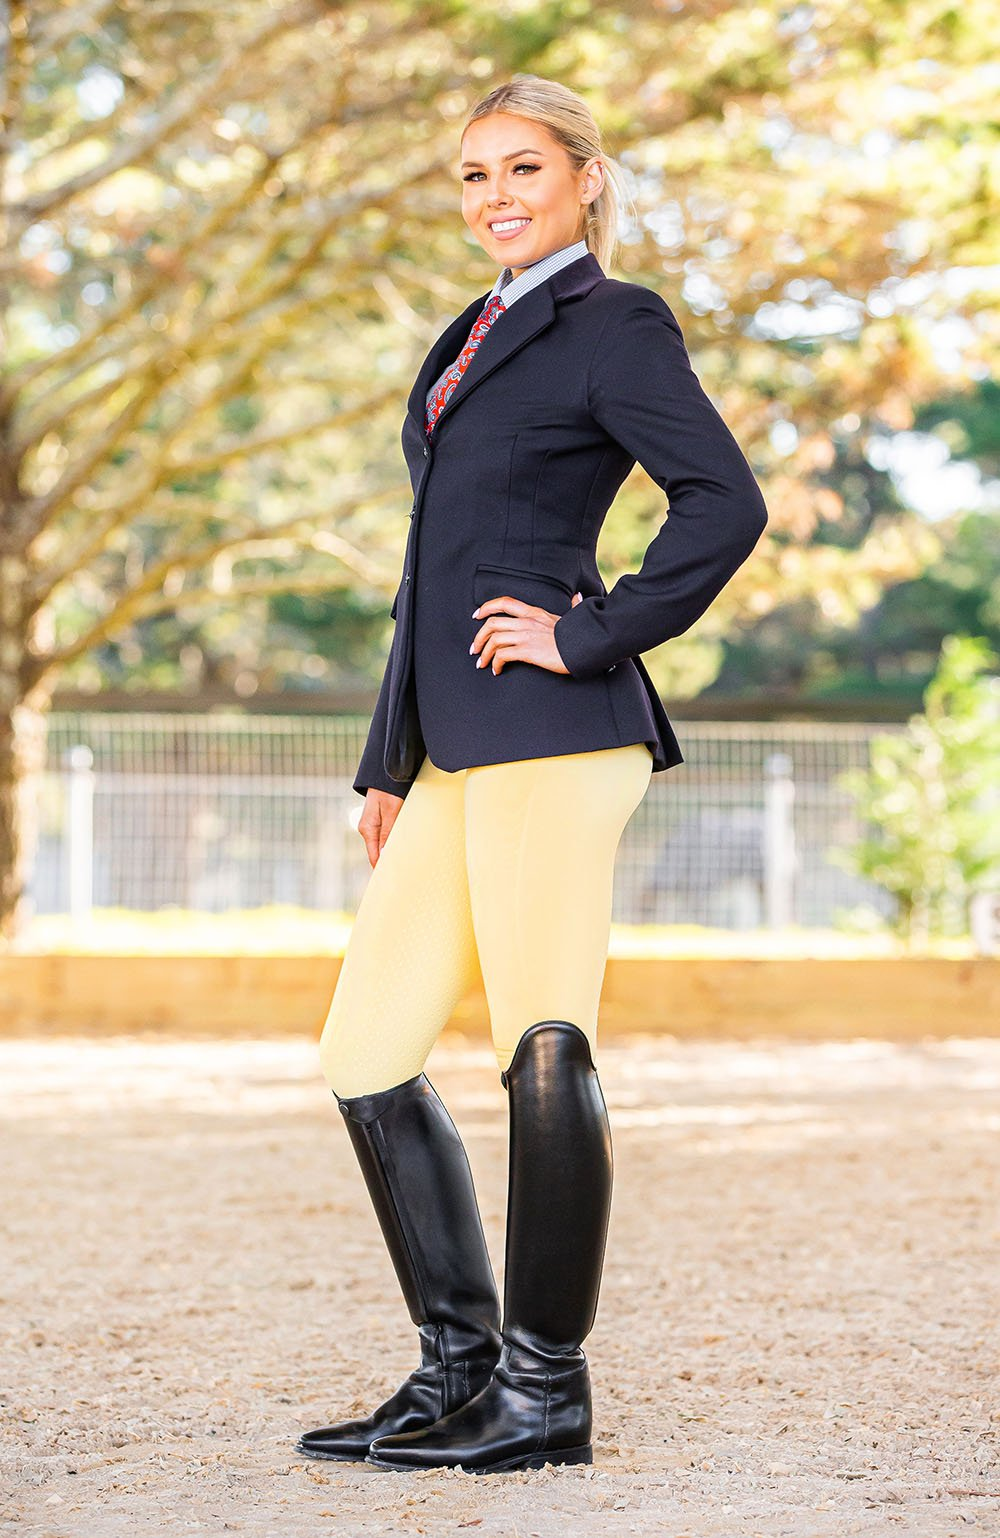 Bare Equestrian Competition Performance Tights - Lemon Butter